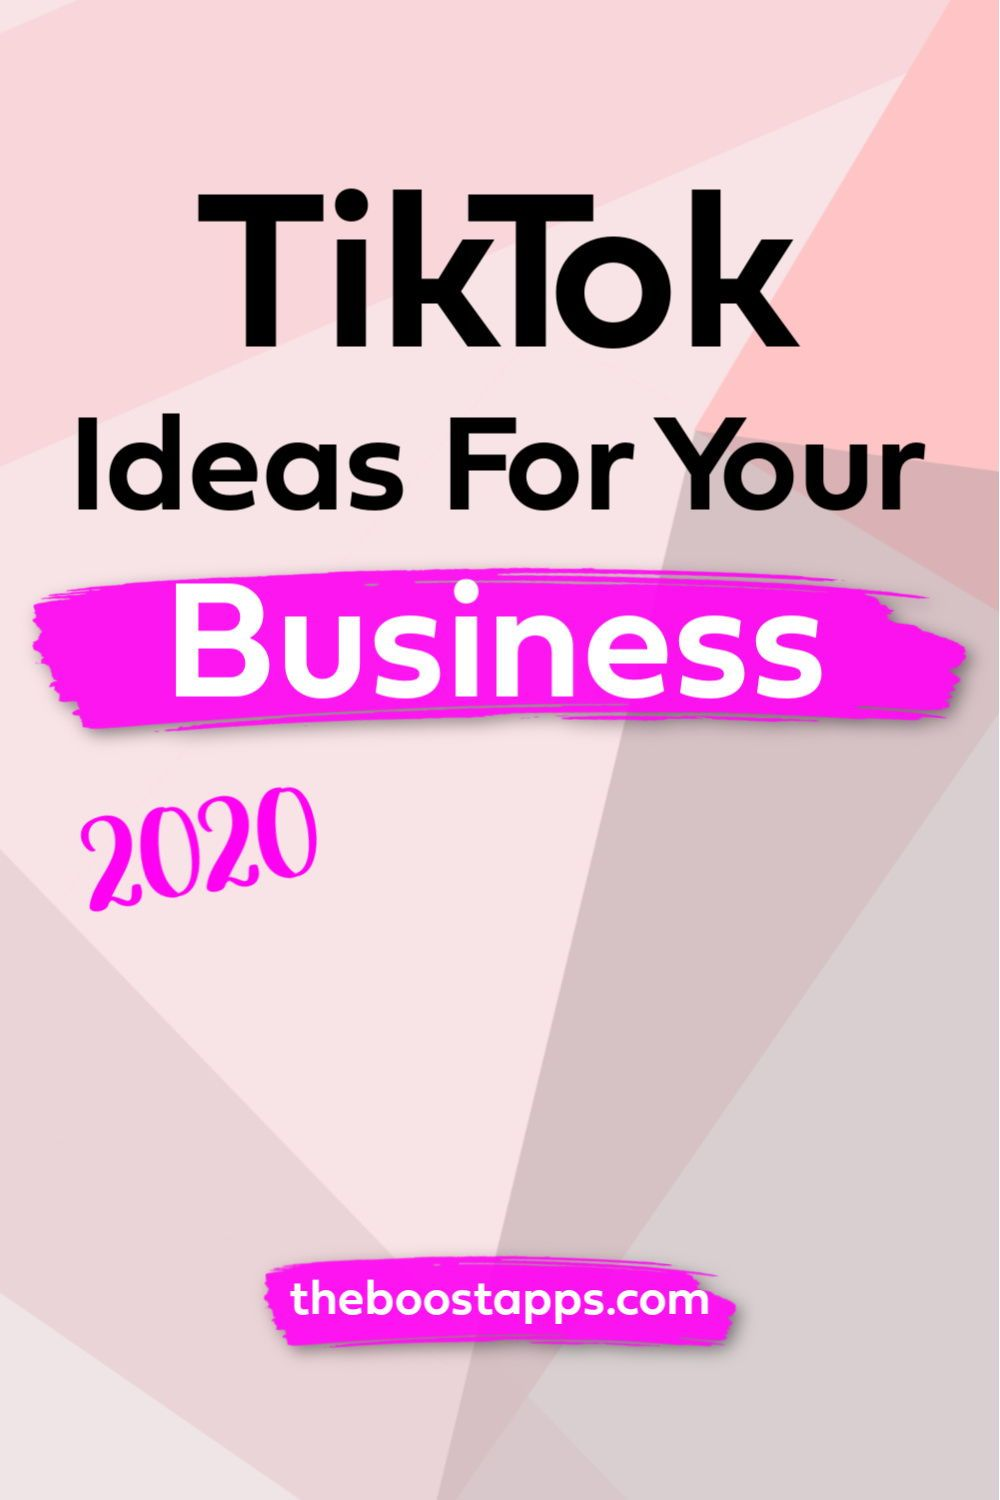 7 Tiktok Ideas For Your Business Boosted Business Boost Business Content Marketing Strategy Social Media